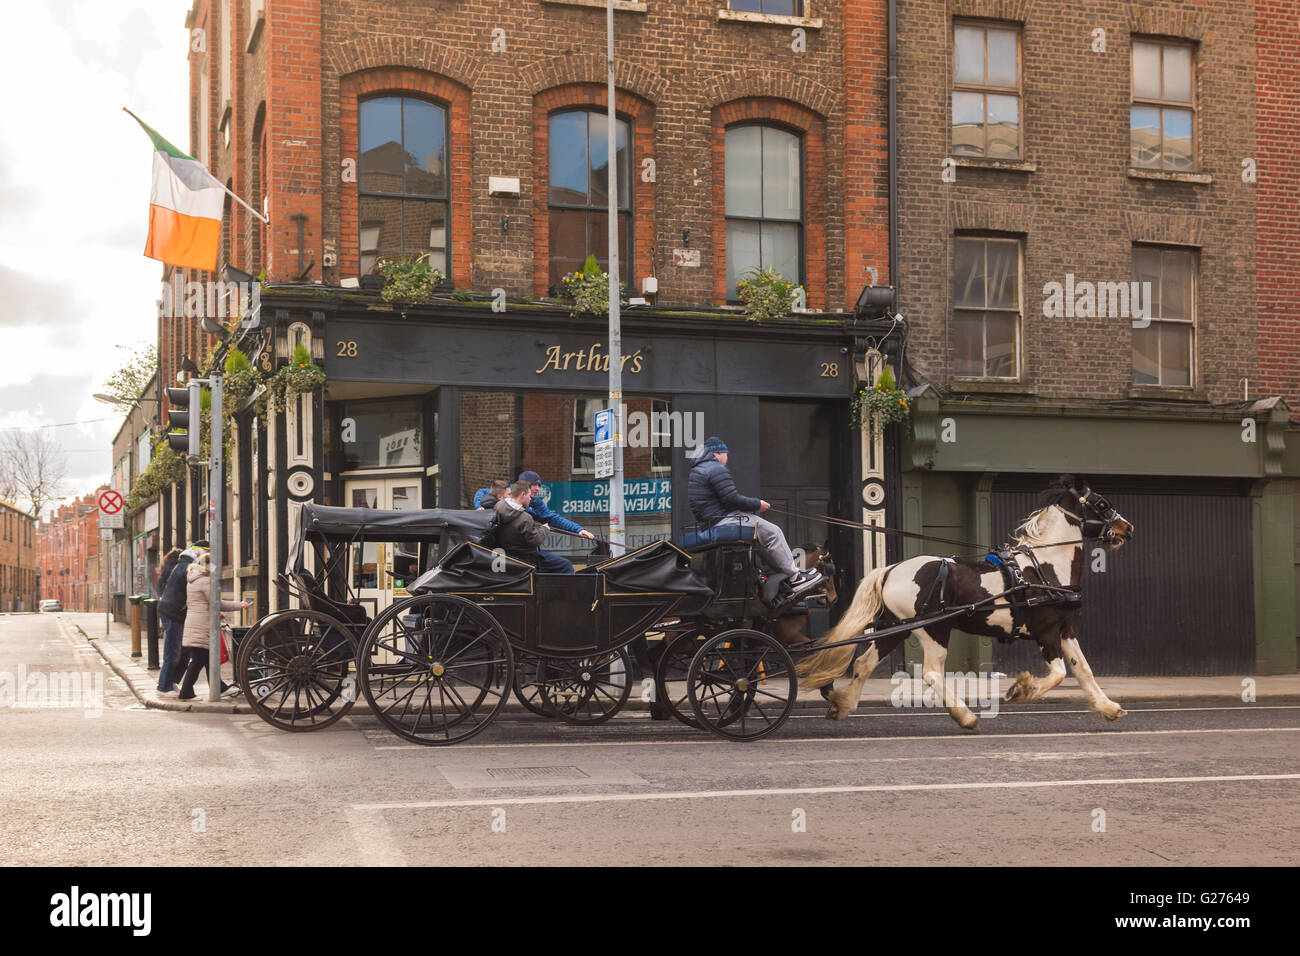 Young men youths driving racing horse drawn carriages in the Liberties area of Dublin, Ireland - Stock Image